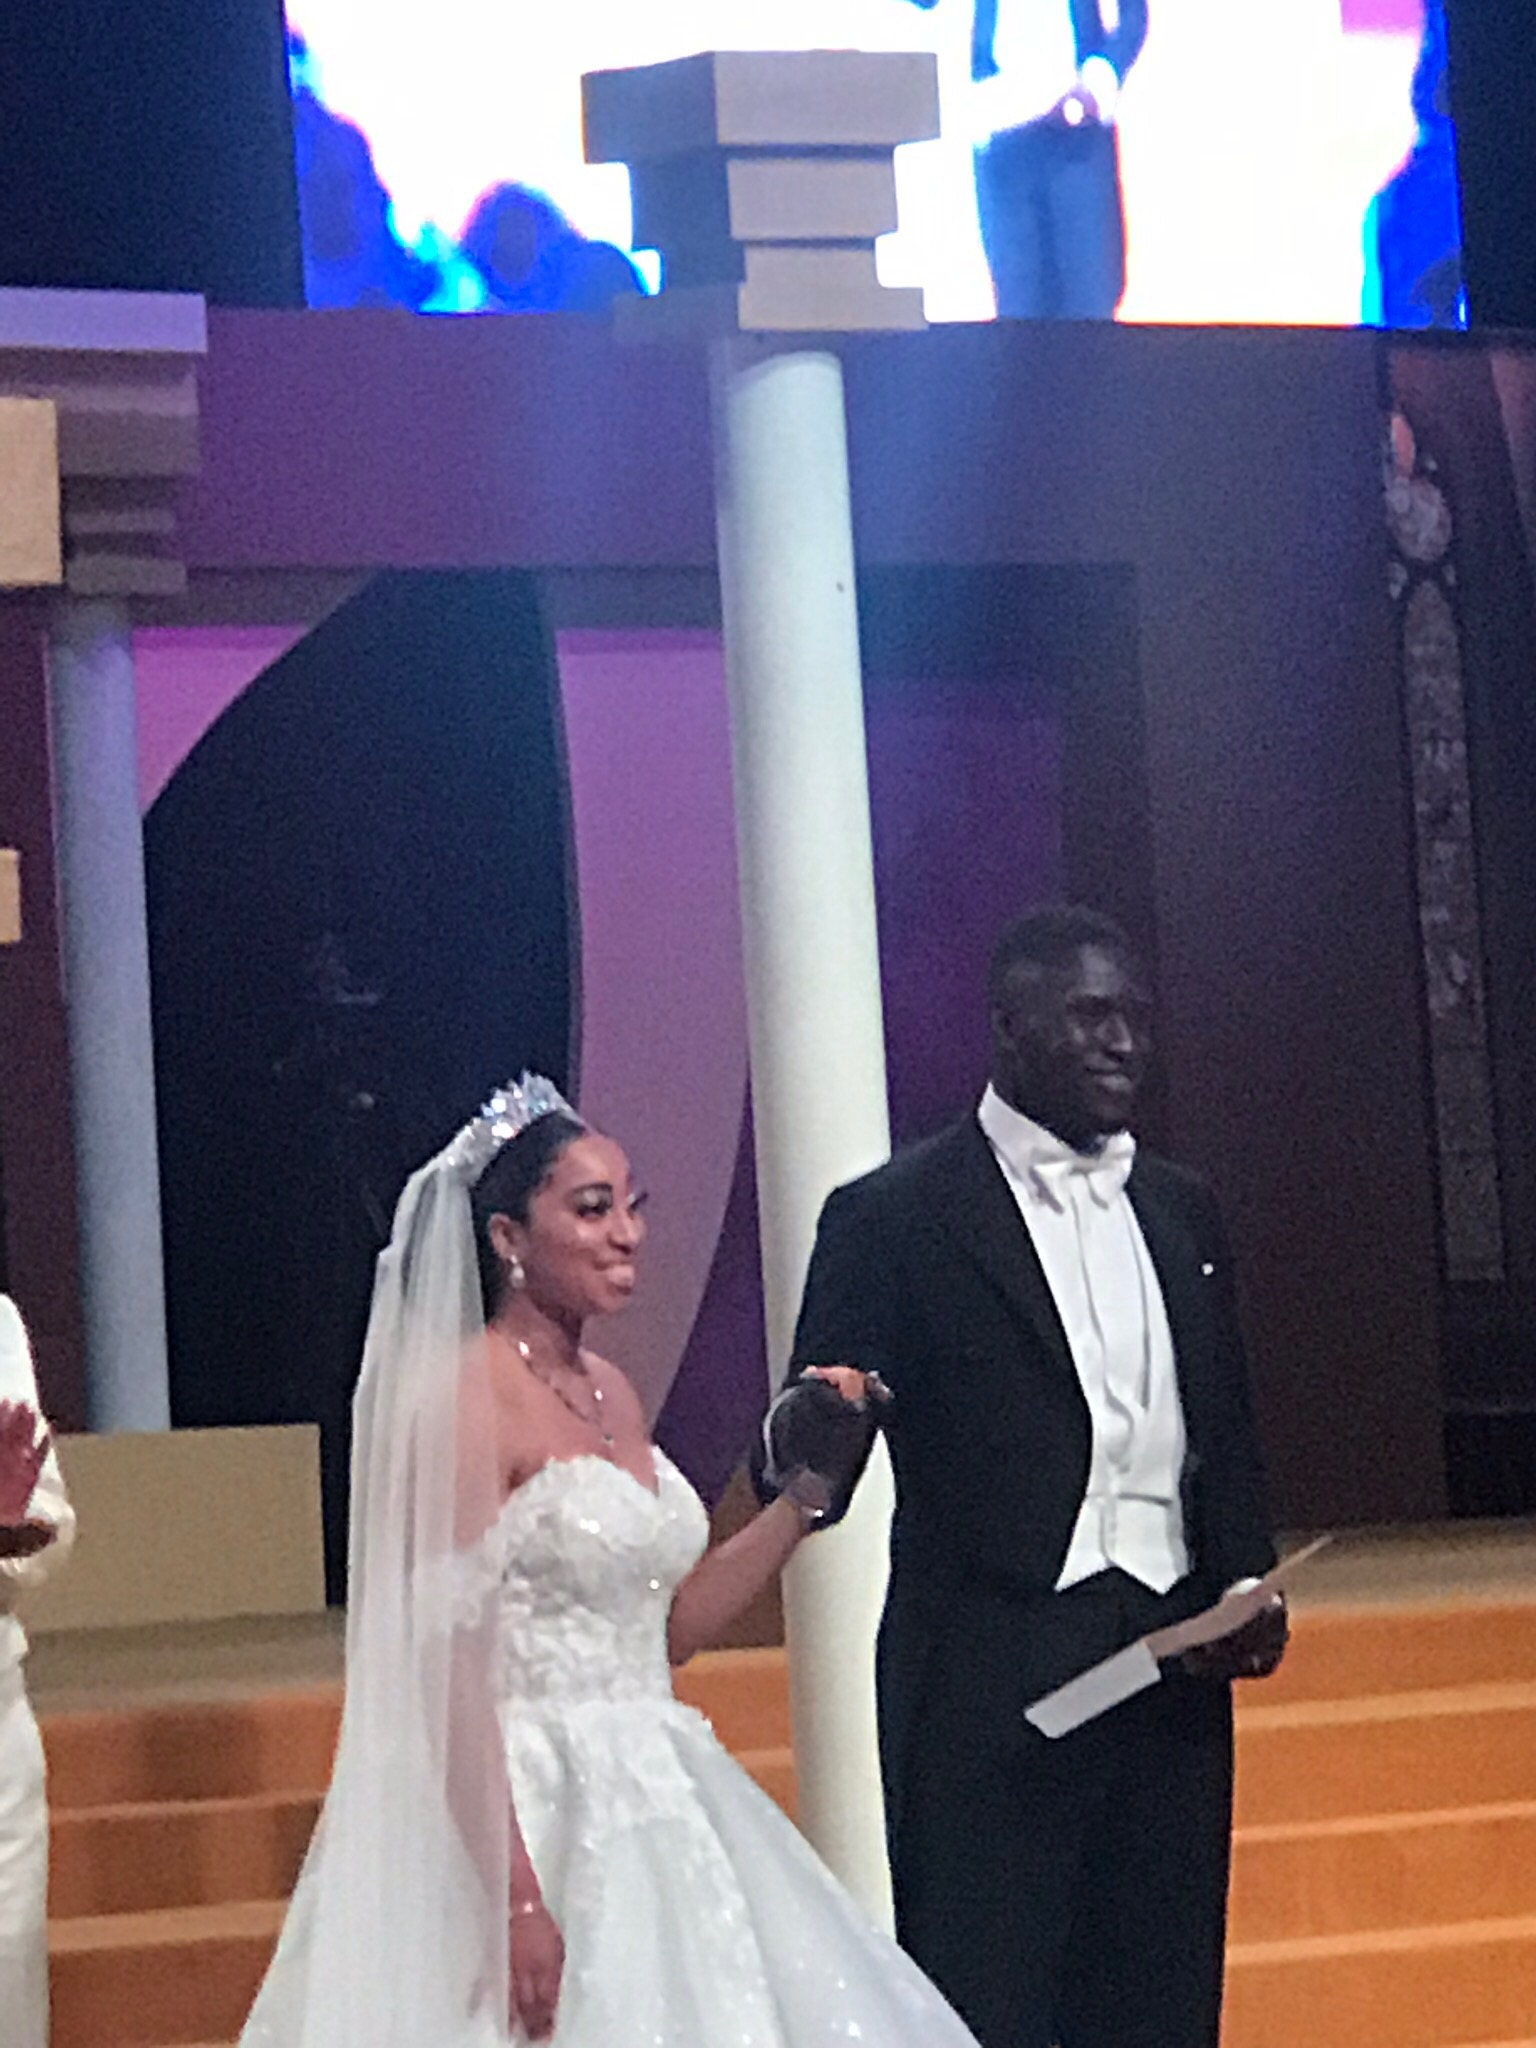 Congratulations to Sharon and Philip